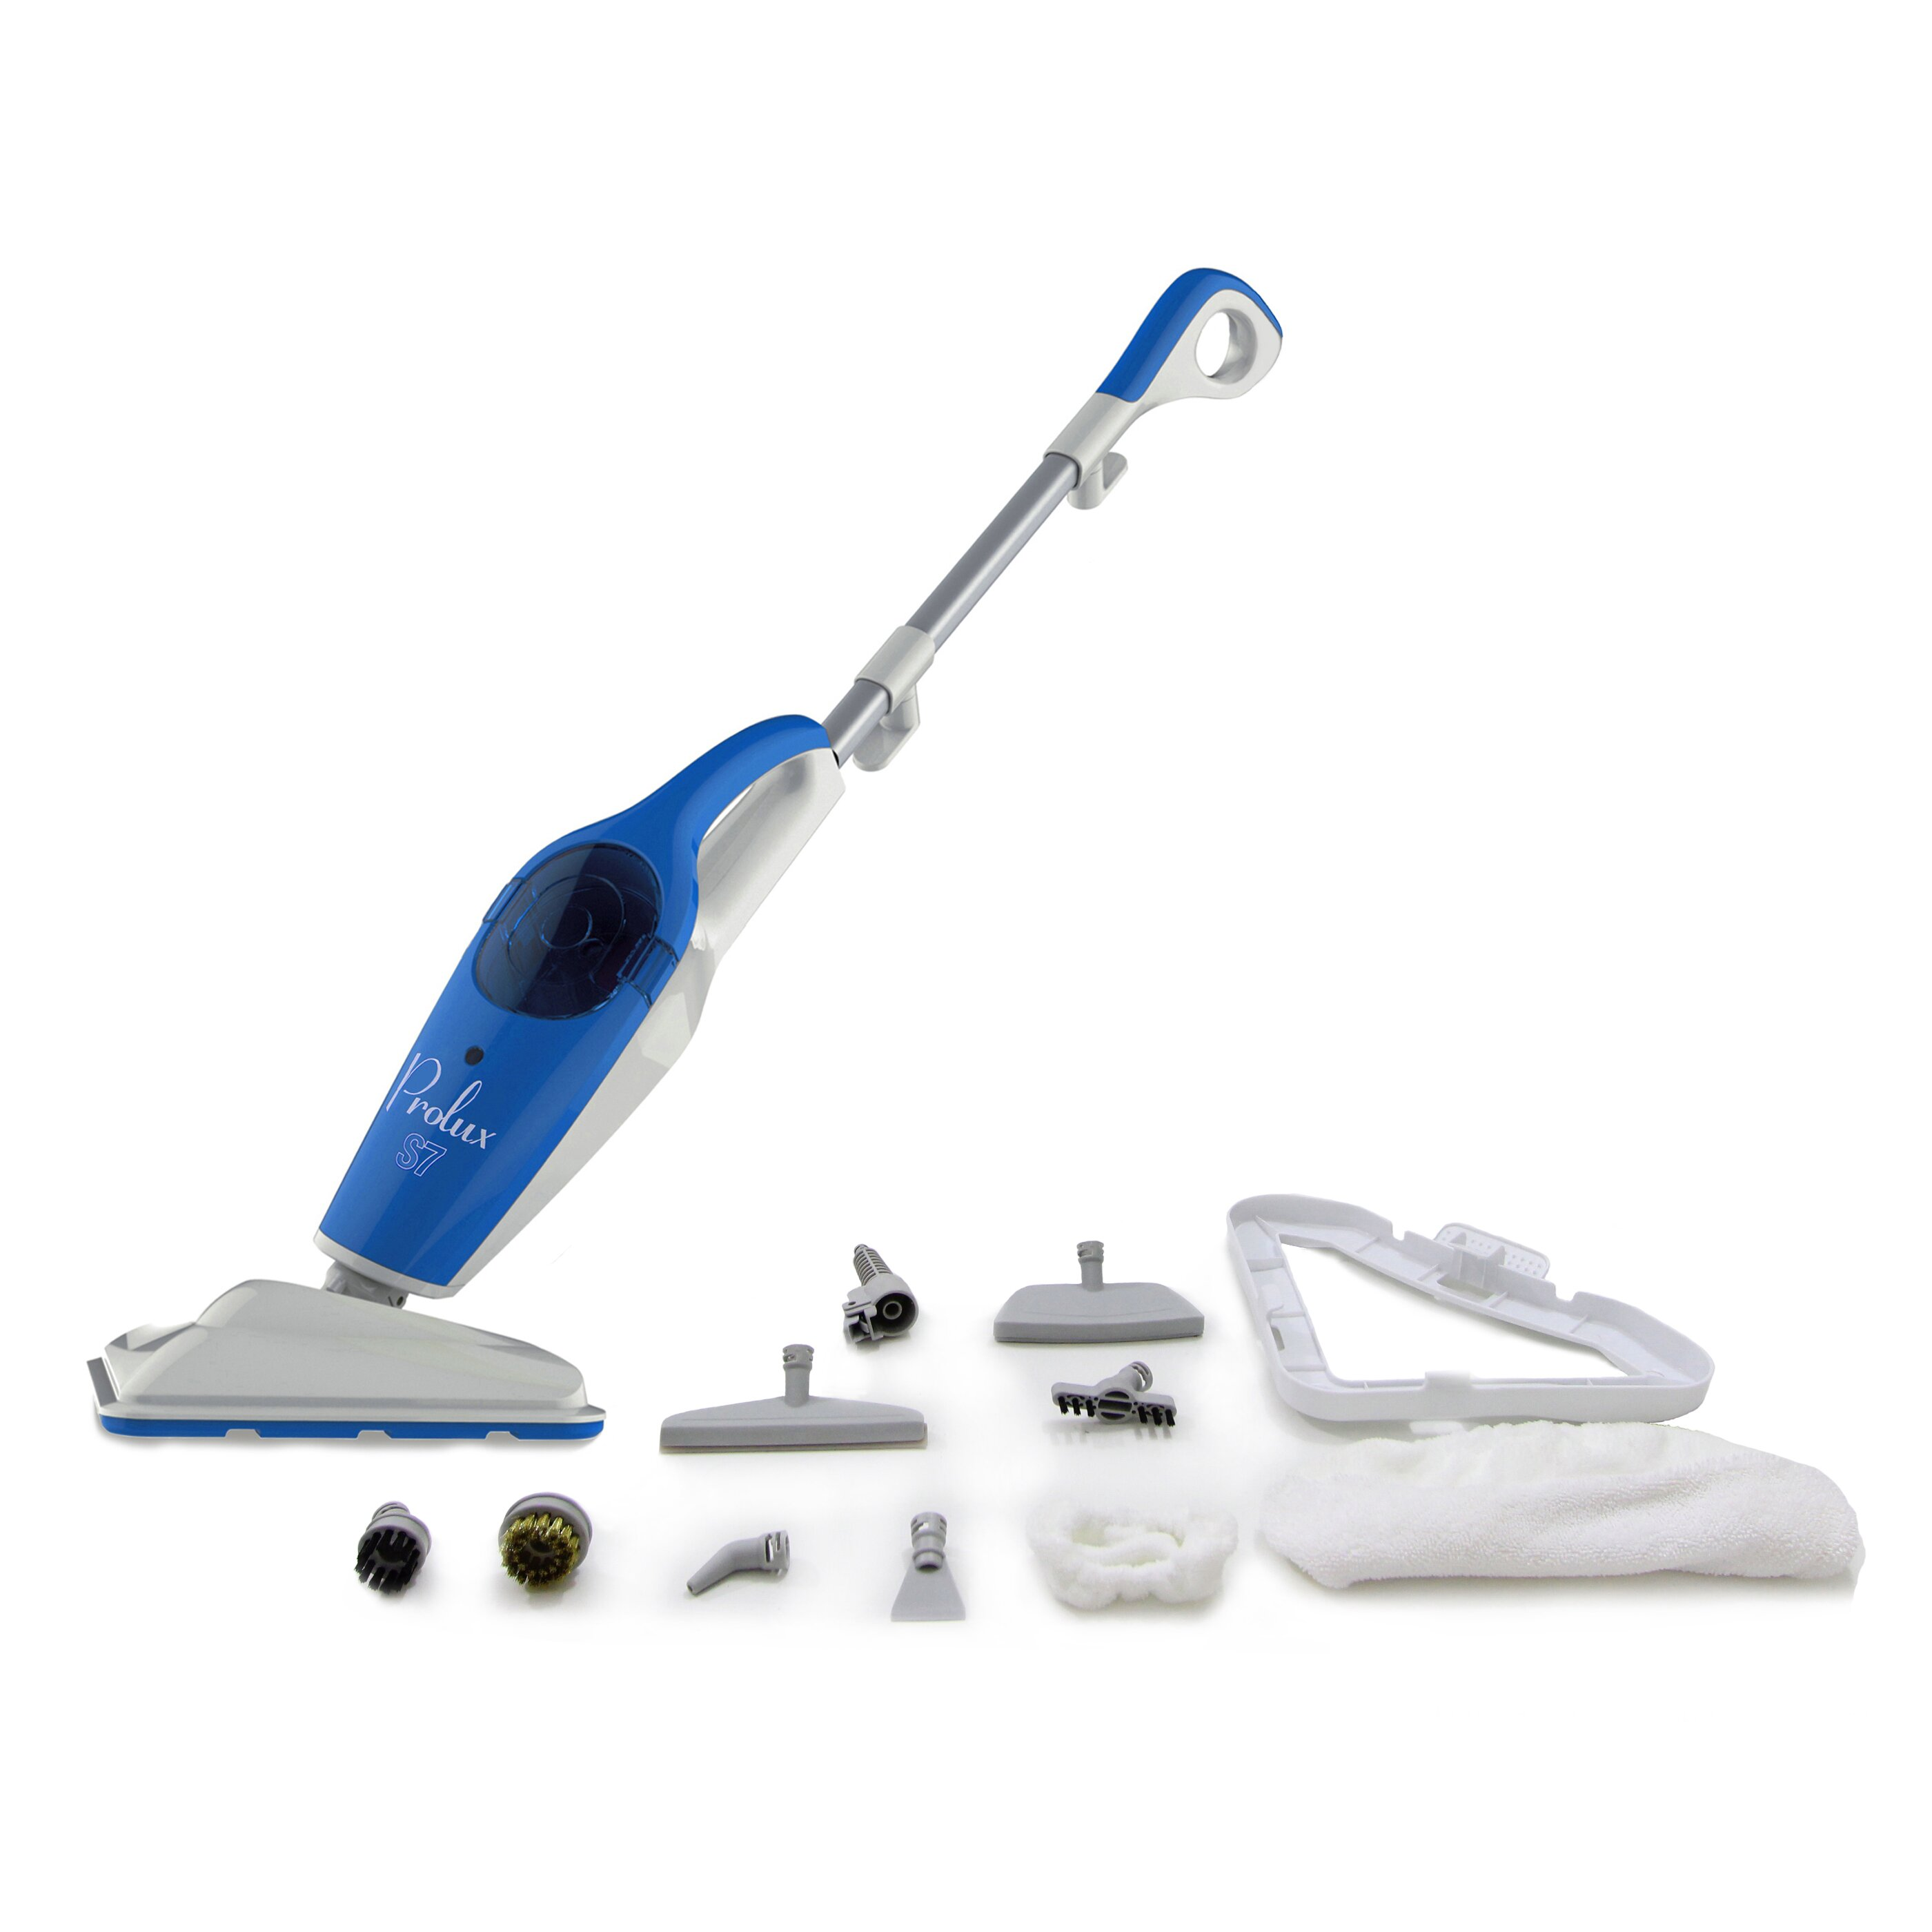 Prolux steam mop 7 in 1 h2o multi surface cleaner for Steam mop 17 in 1